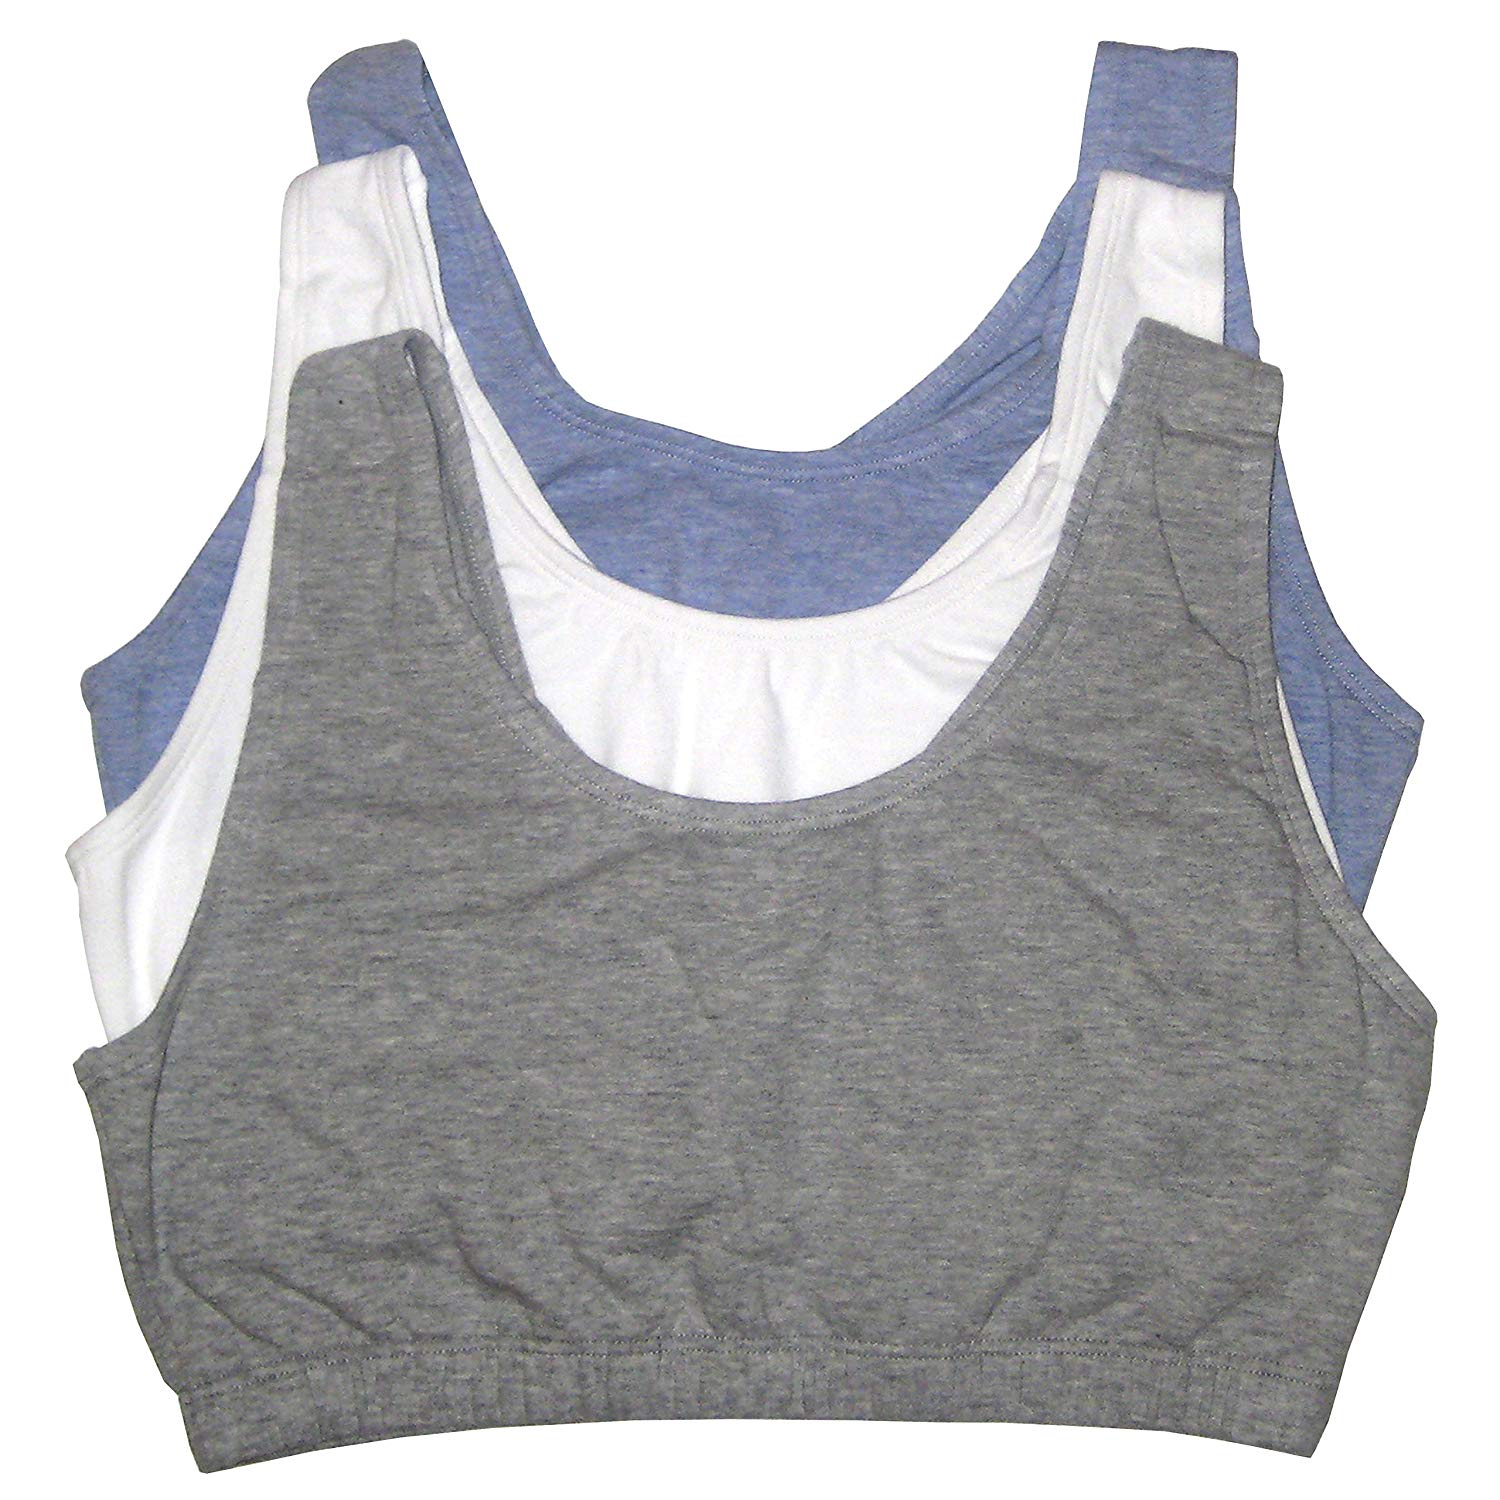 26bfbb4a328c7 Fruit Of The Loom. Fruit Of The Loom Women s Built-up Sports Bra